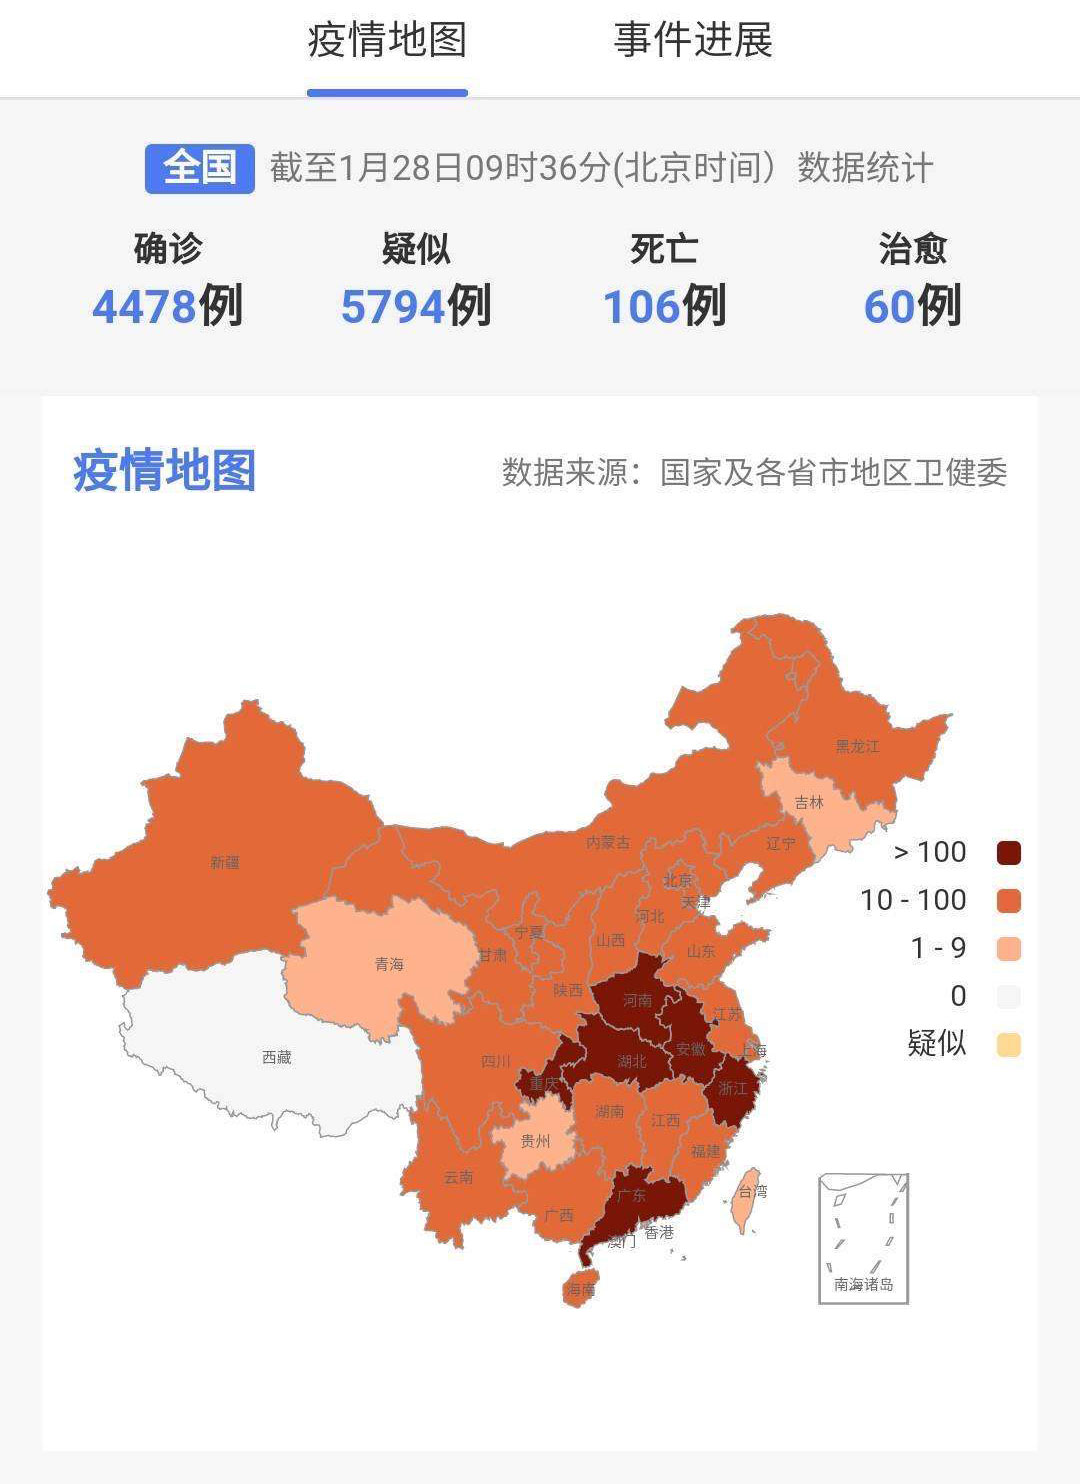 CoronaVirus-situation-in-China